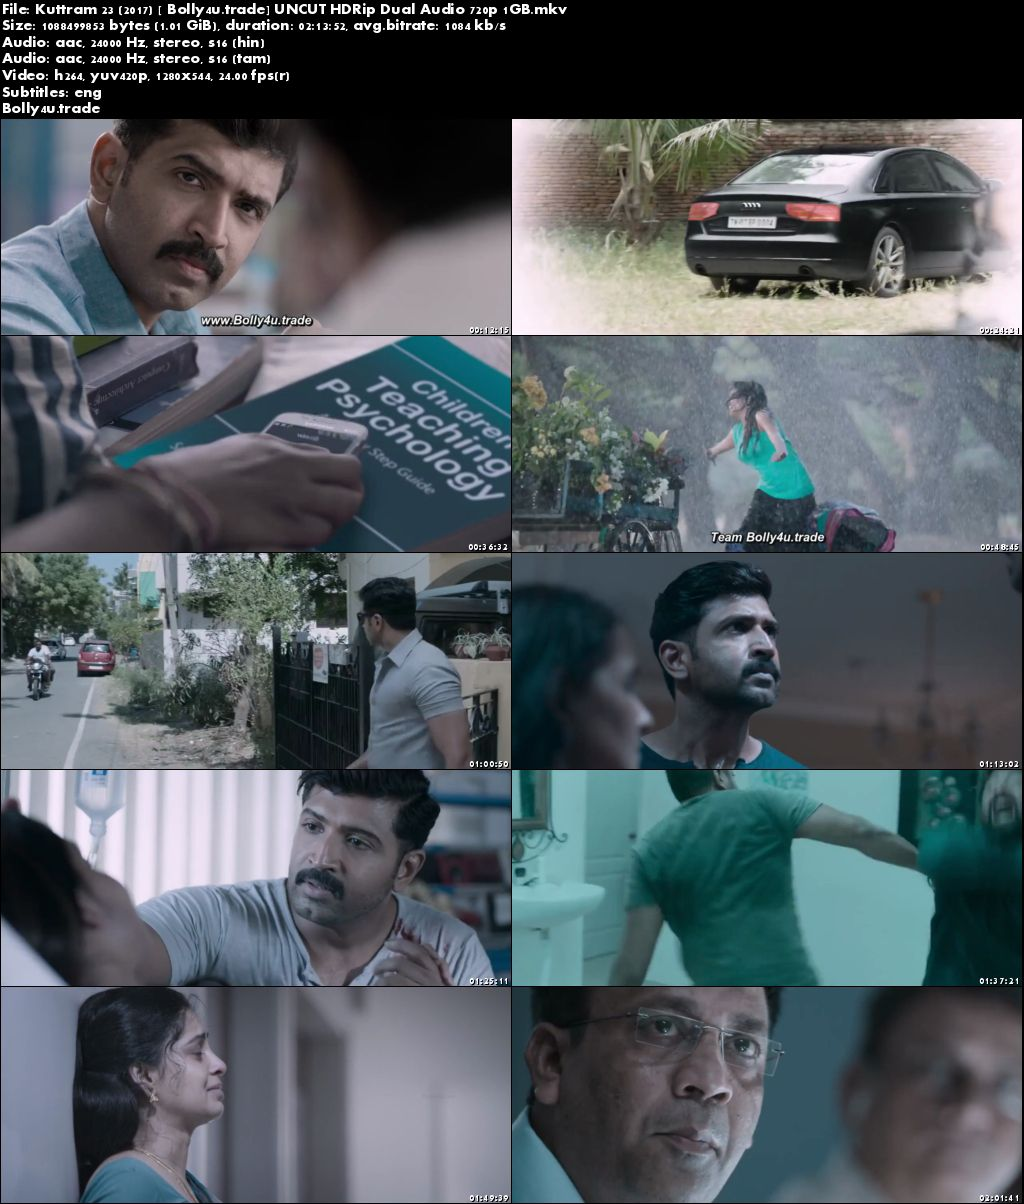 Kuttram 23 2017 HDRip 1GB UNCUT Hindi Dual Audio 720p Download